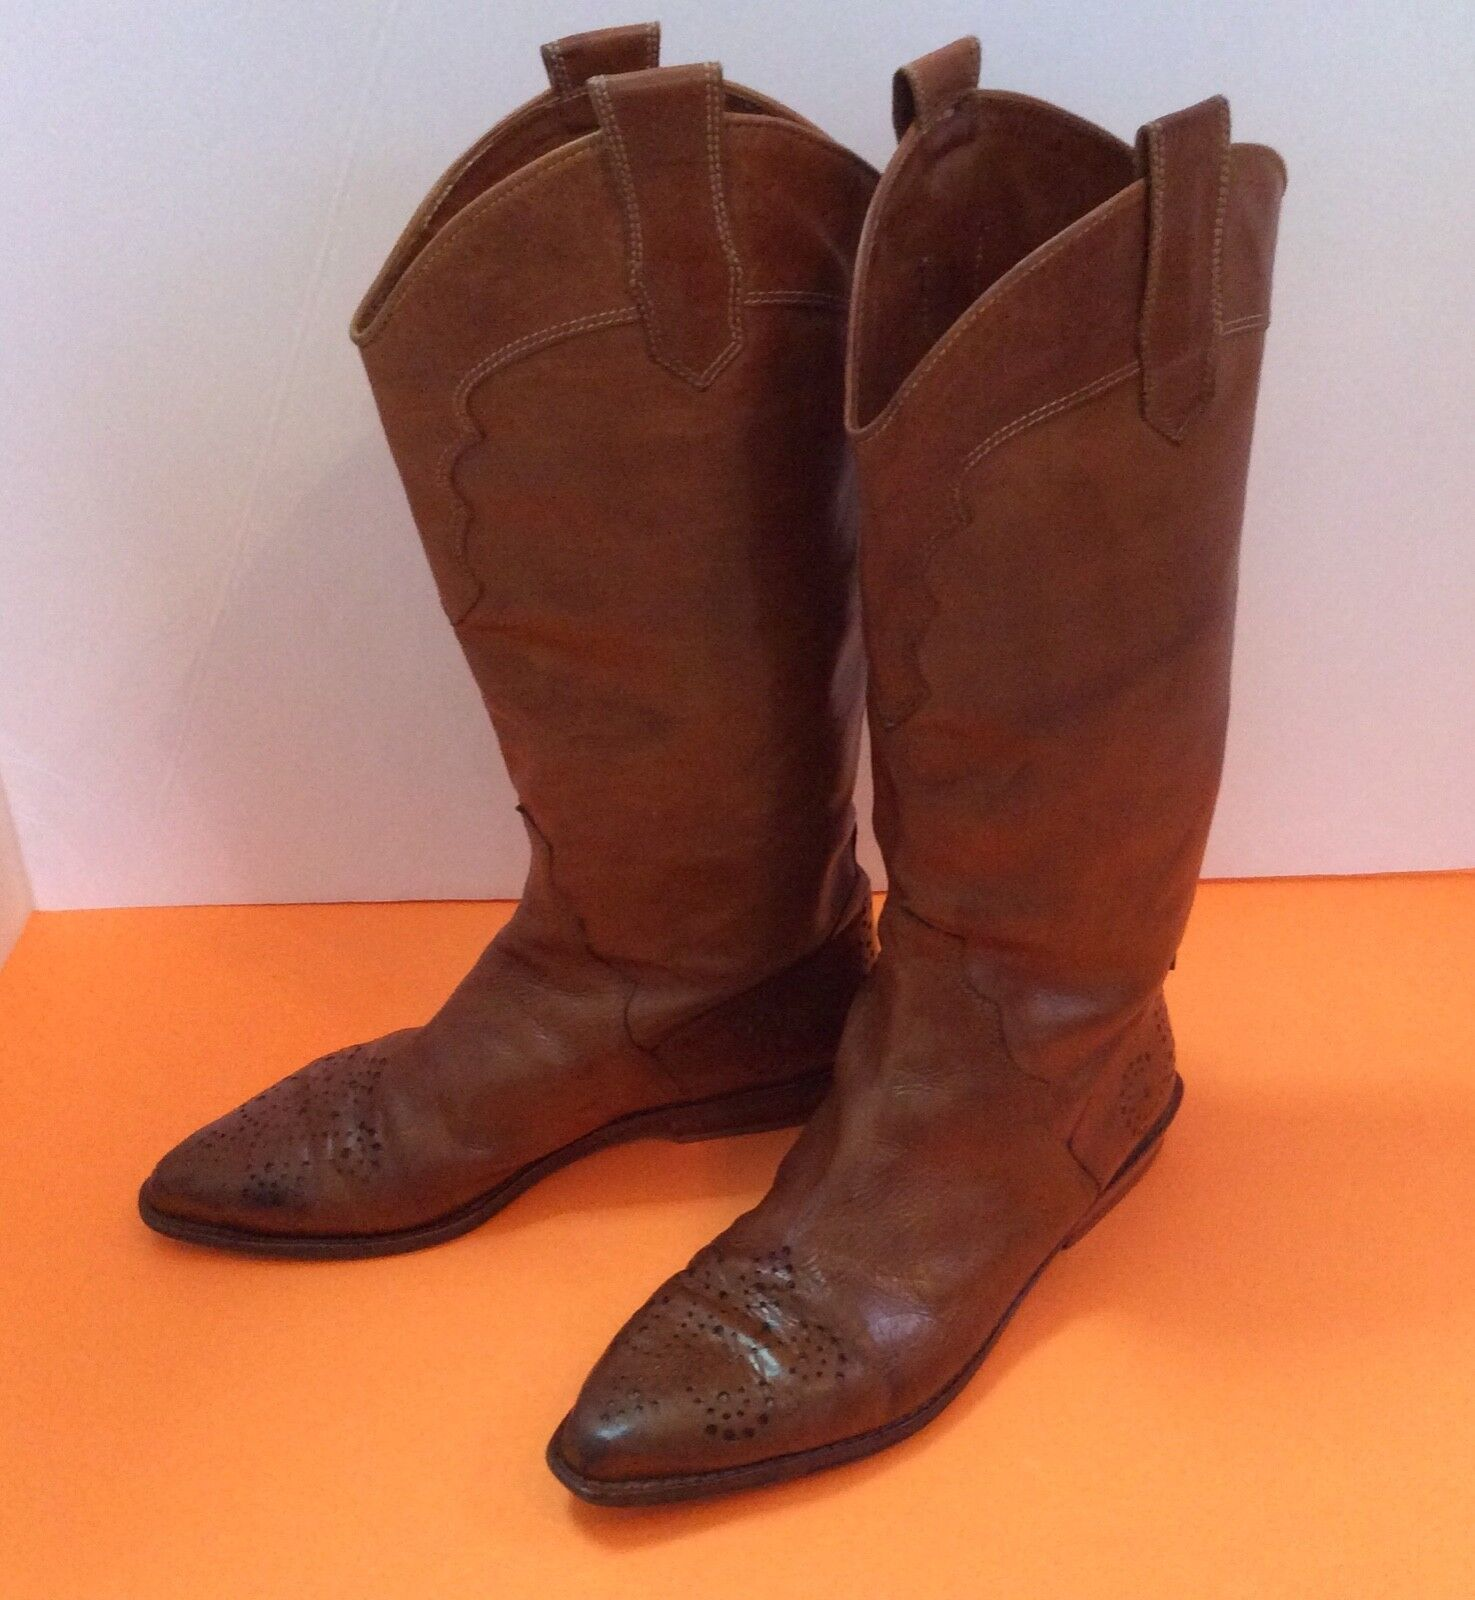 Joan & David Vtg 80's brn leather perforated detail pull-on boot sz 8m ladies